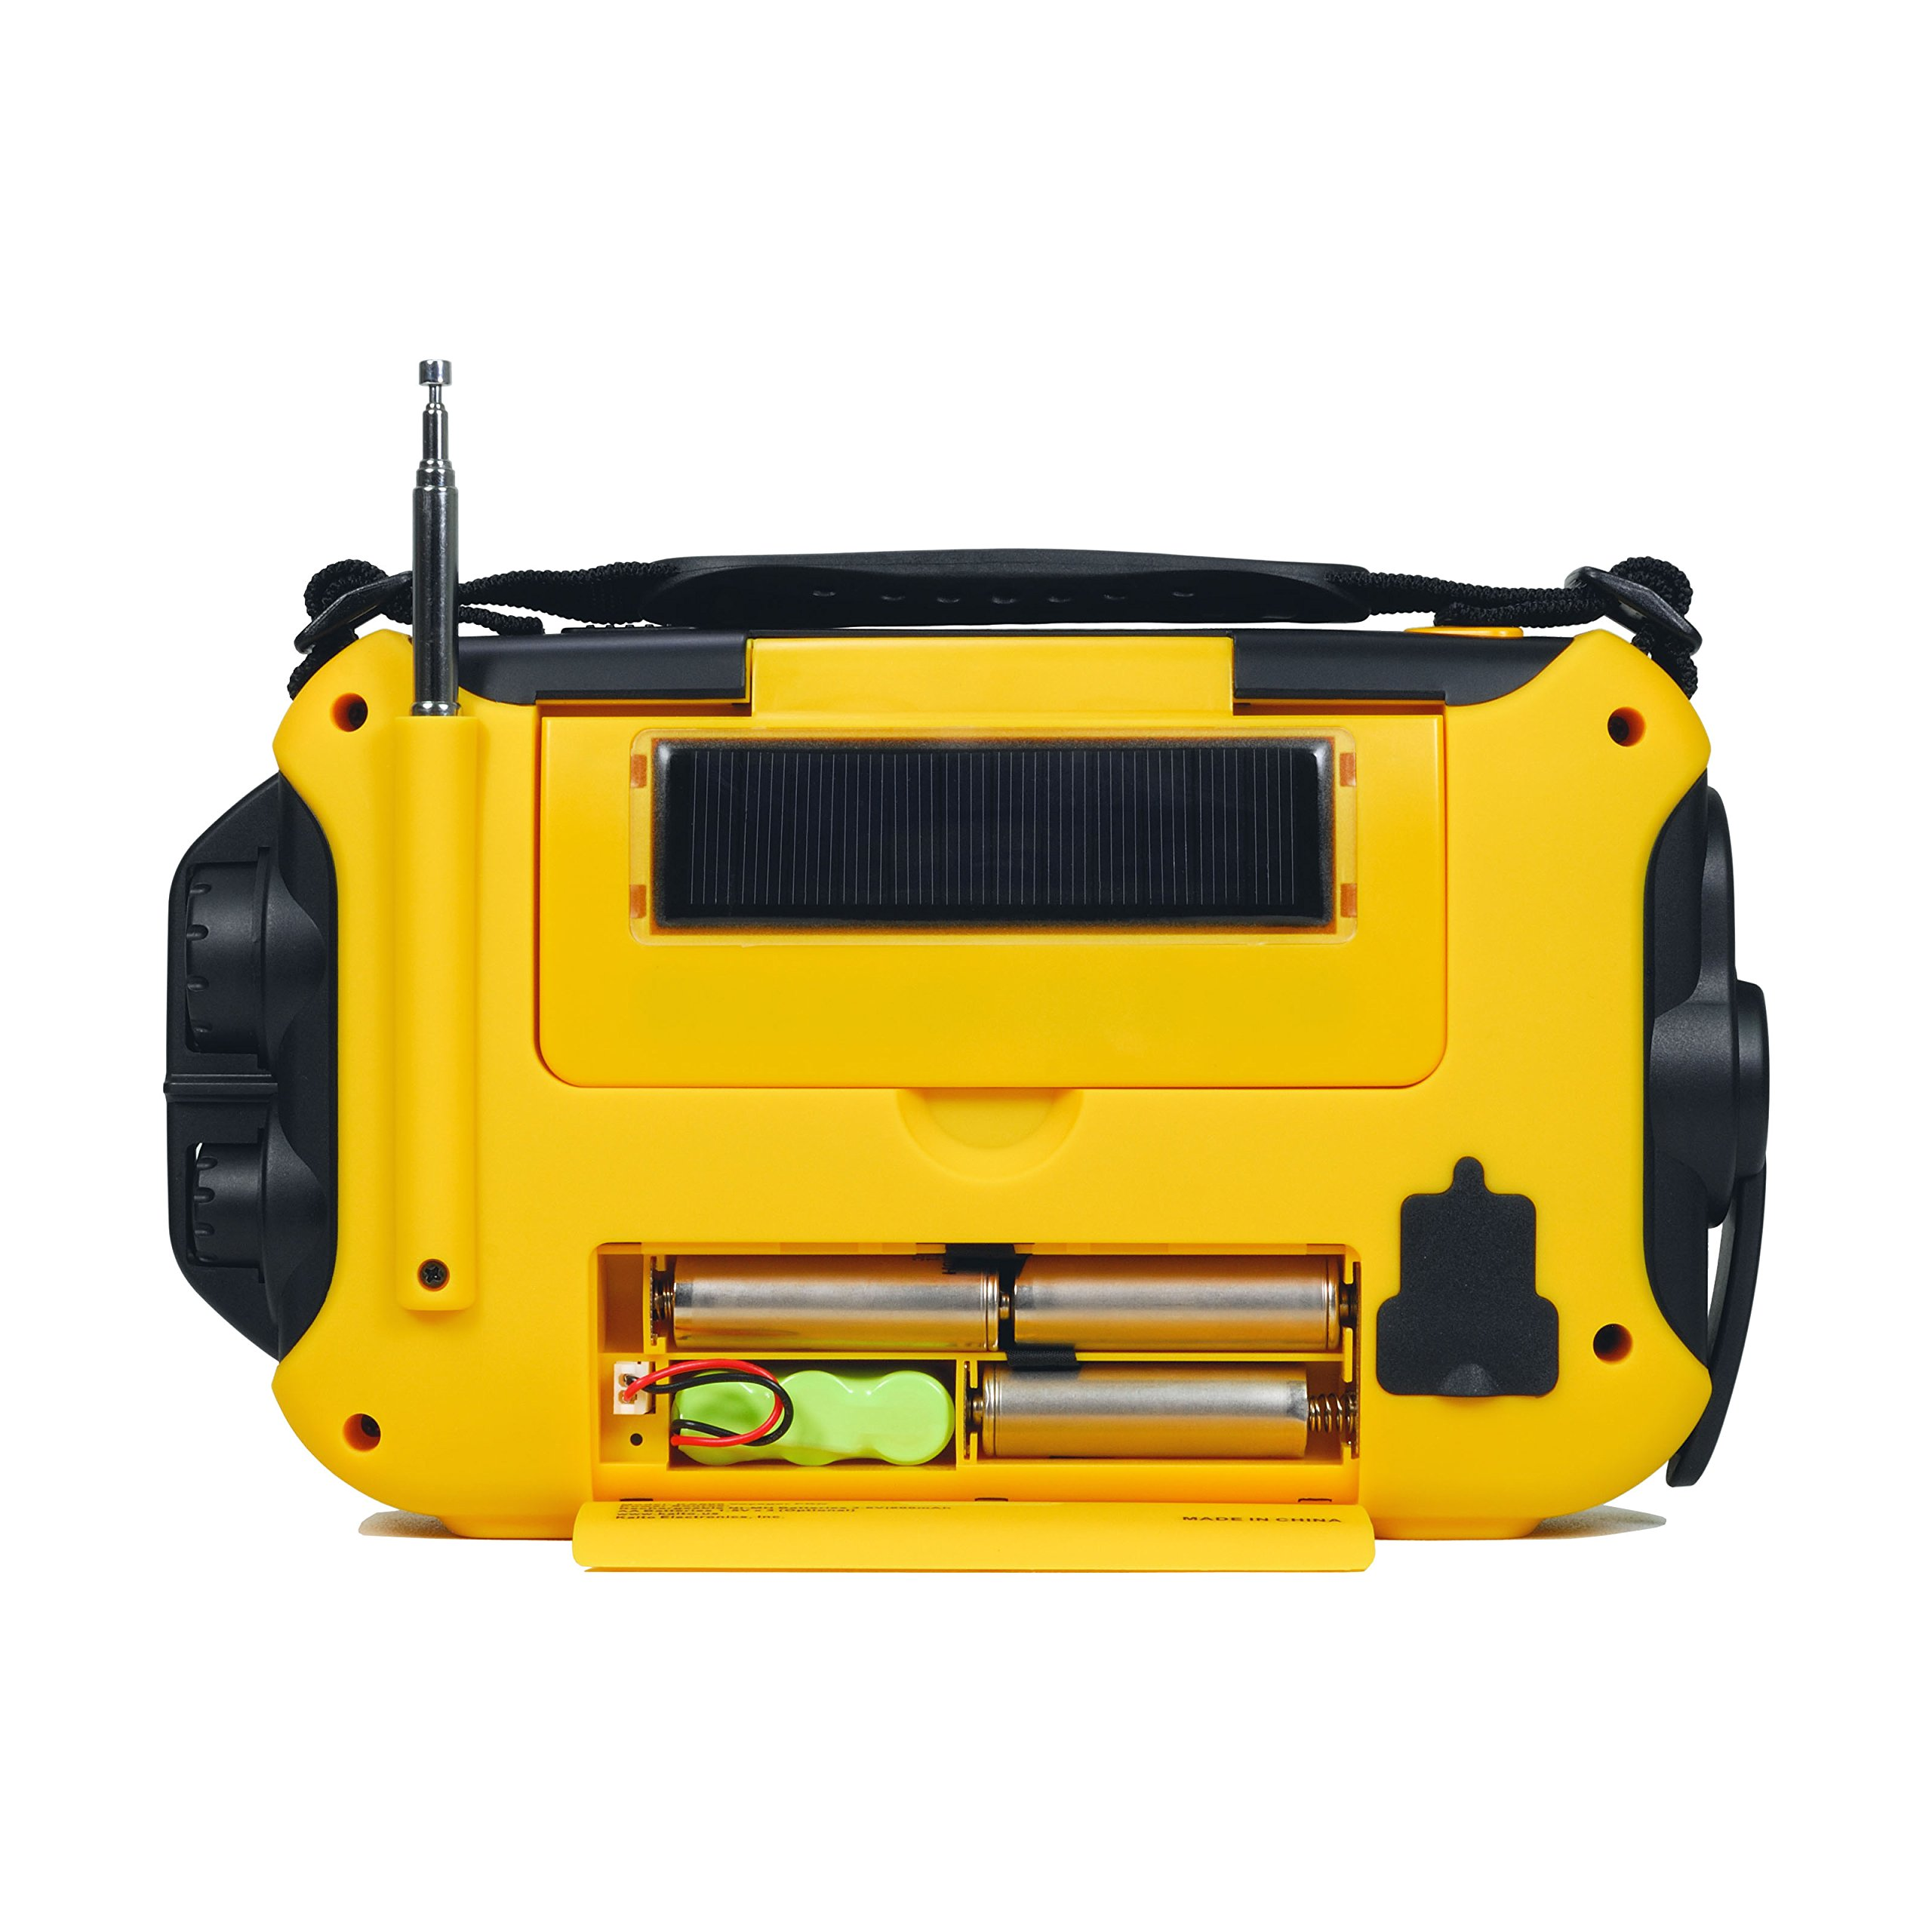 Kaito Voyager Pro KA600 Digital Solar Dynamo Crank Wind Up AM/FM/LW/SW & NOAA Weather Emergency Radio with Alert, RDS & Smart Phone Charger, Yellow (AC Wall Adapter Included) by Kaito (Image #7)